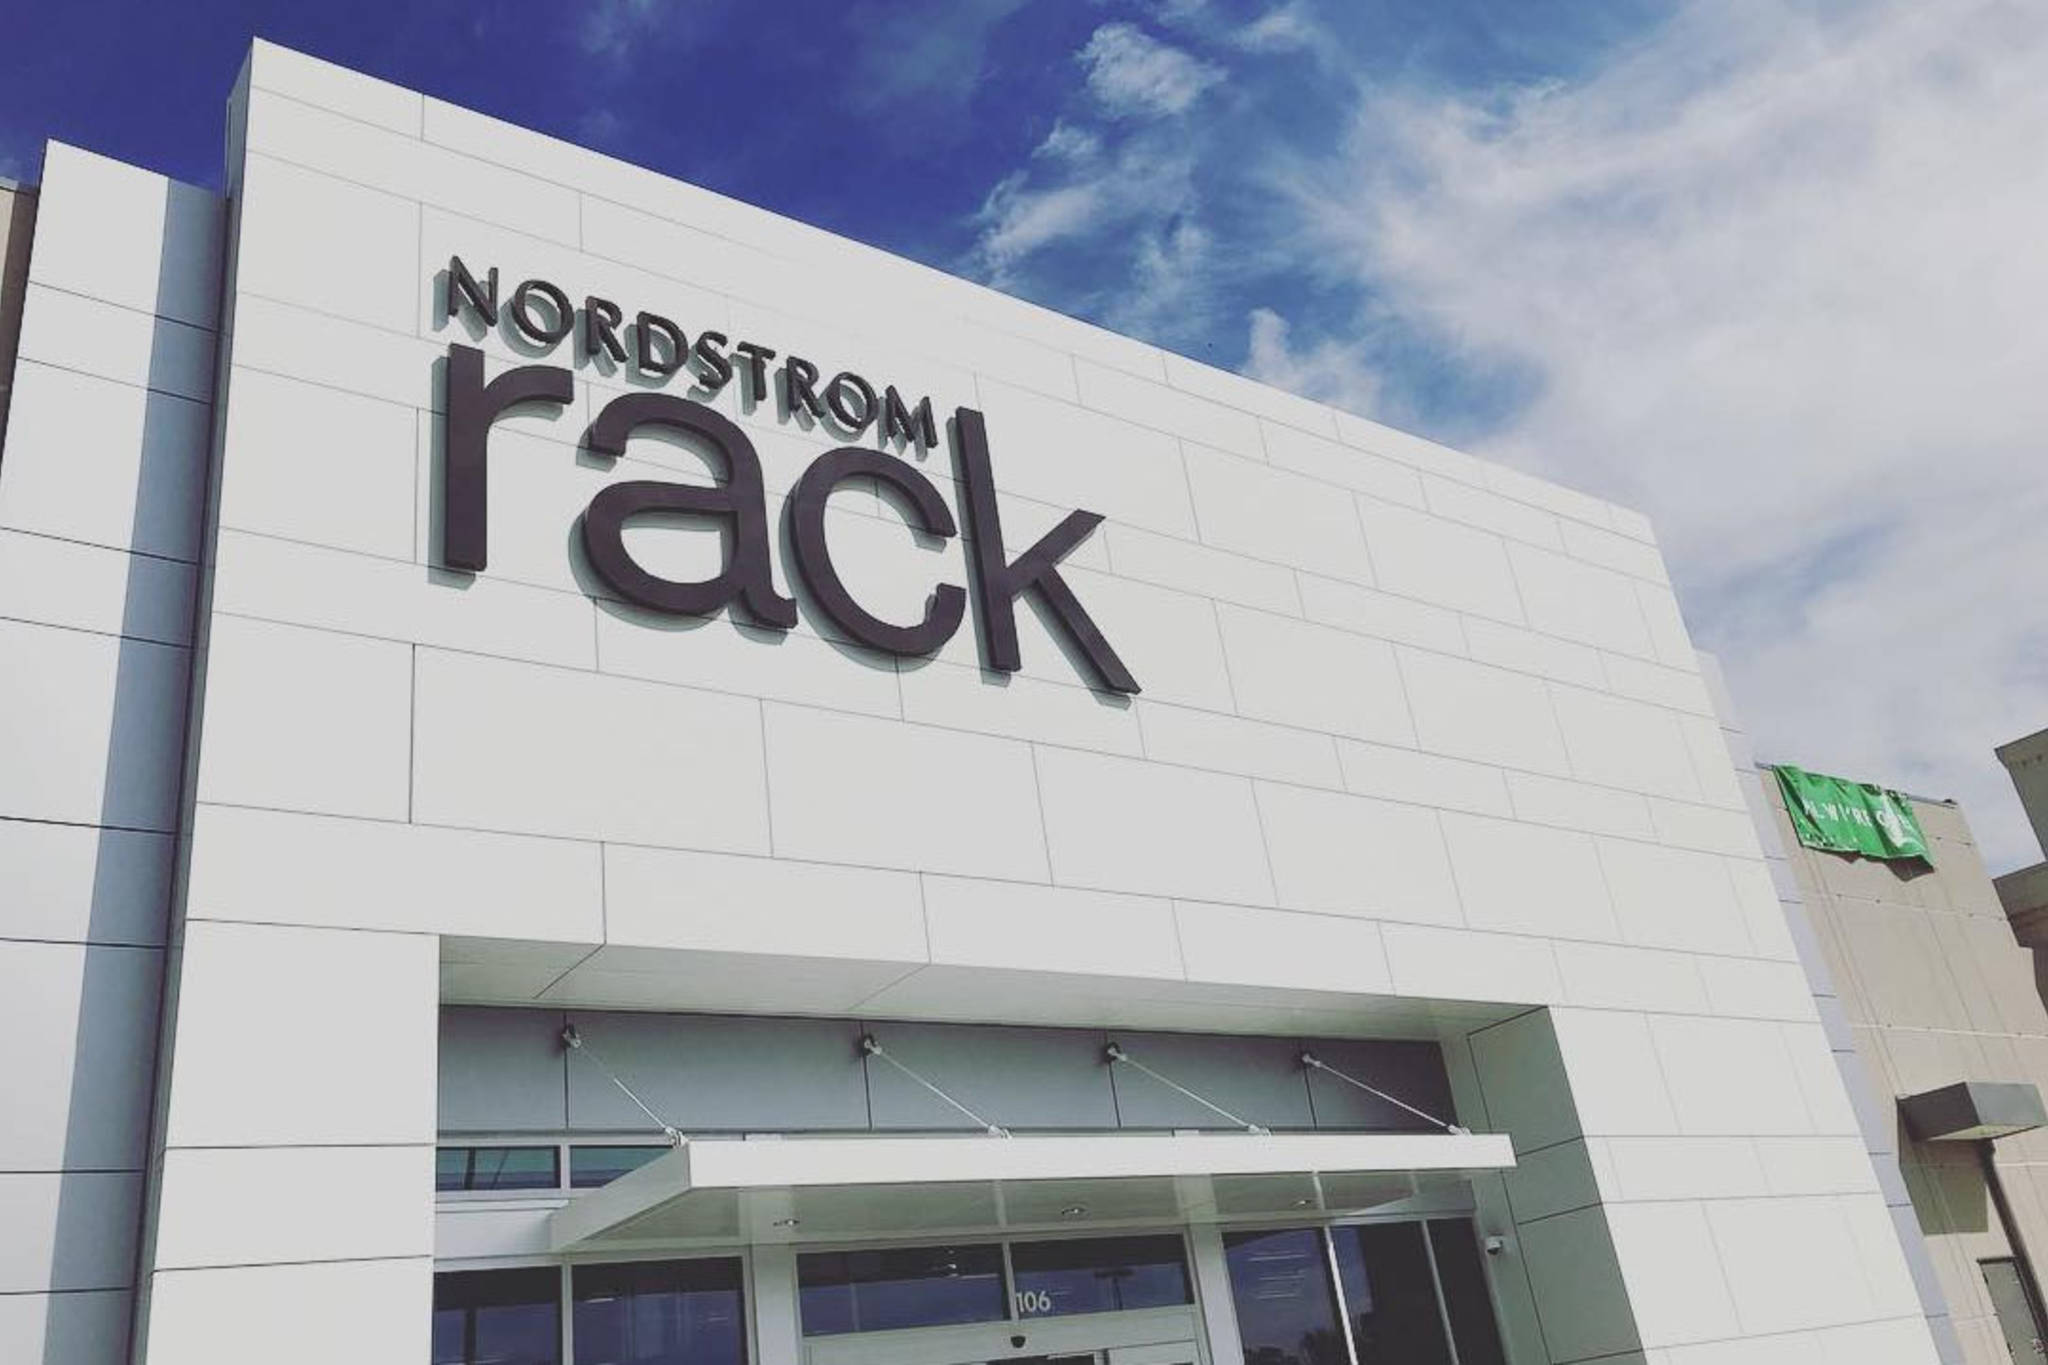 Nordstrom Rack Grand Opening in Toronto